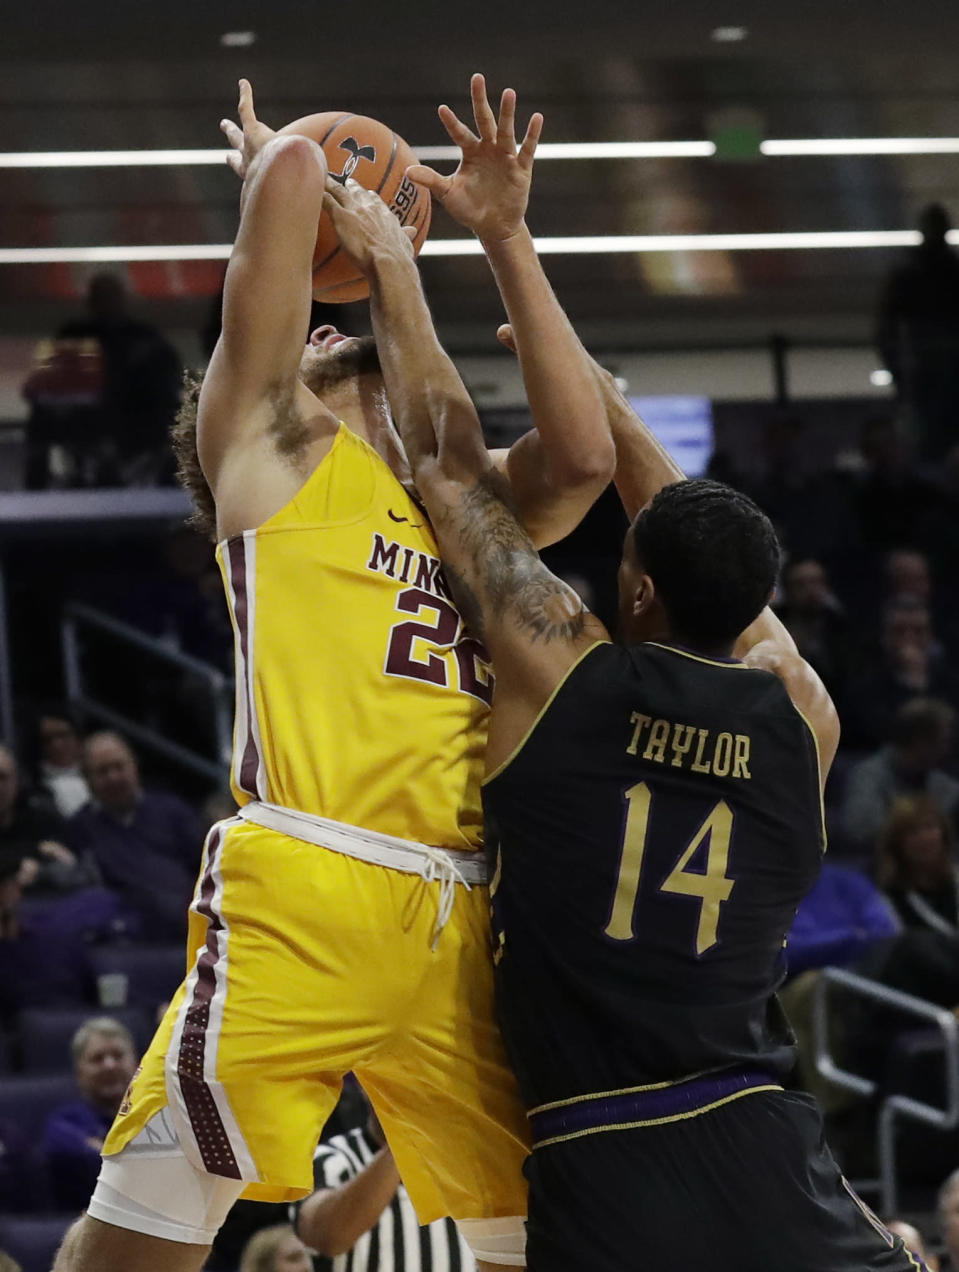 Northwestern guard Ryan Taylor, right, blocks a shot by Minnesota guard Gabe Kalscheur during the first half of an NCAA college basketball game Thursday, Feb. 28, 2019, in Evanston, Ill. (AP Photo/Nam Y. Huh)